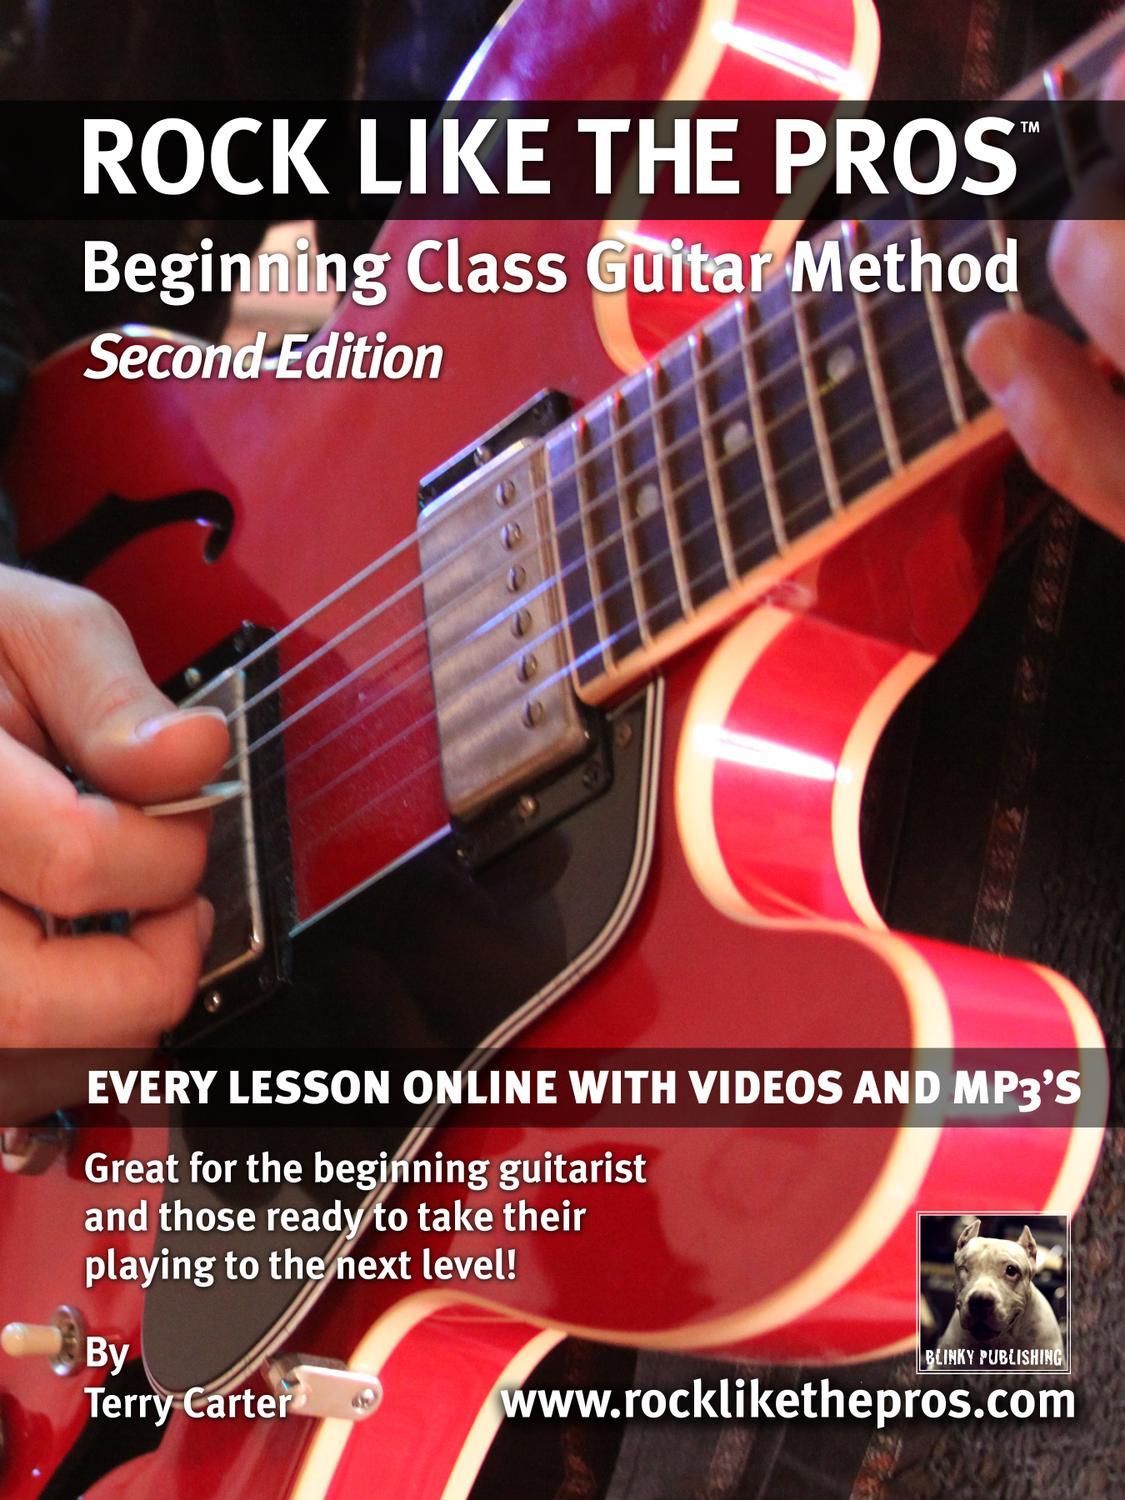 Rock Like The Pros Beginning Class Guitar Method Ch 1 3 By Chord Symble A7 Above A Bar It Means We Have To Play Terry Carter Issuu